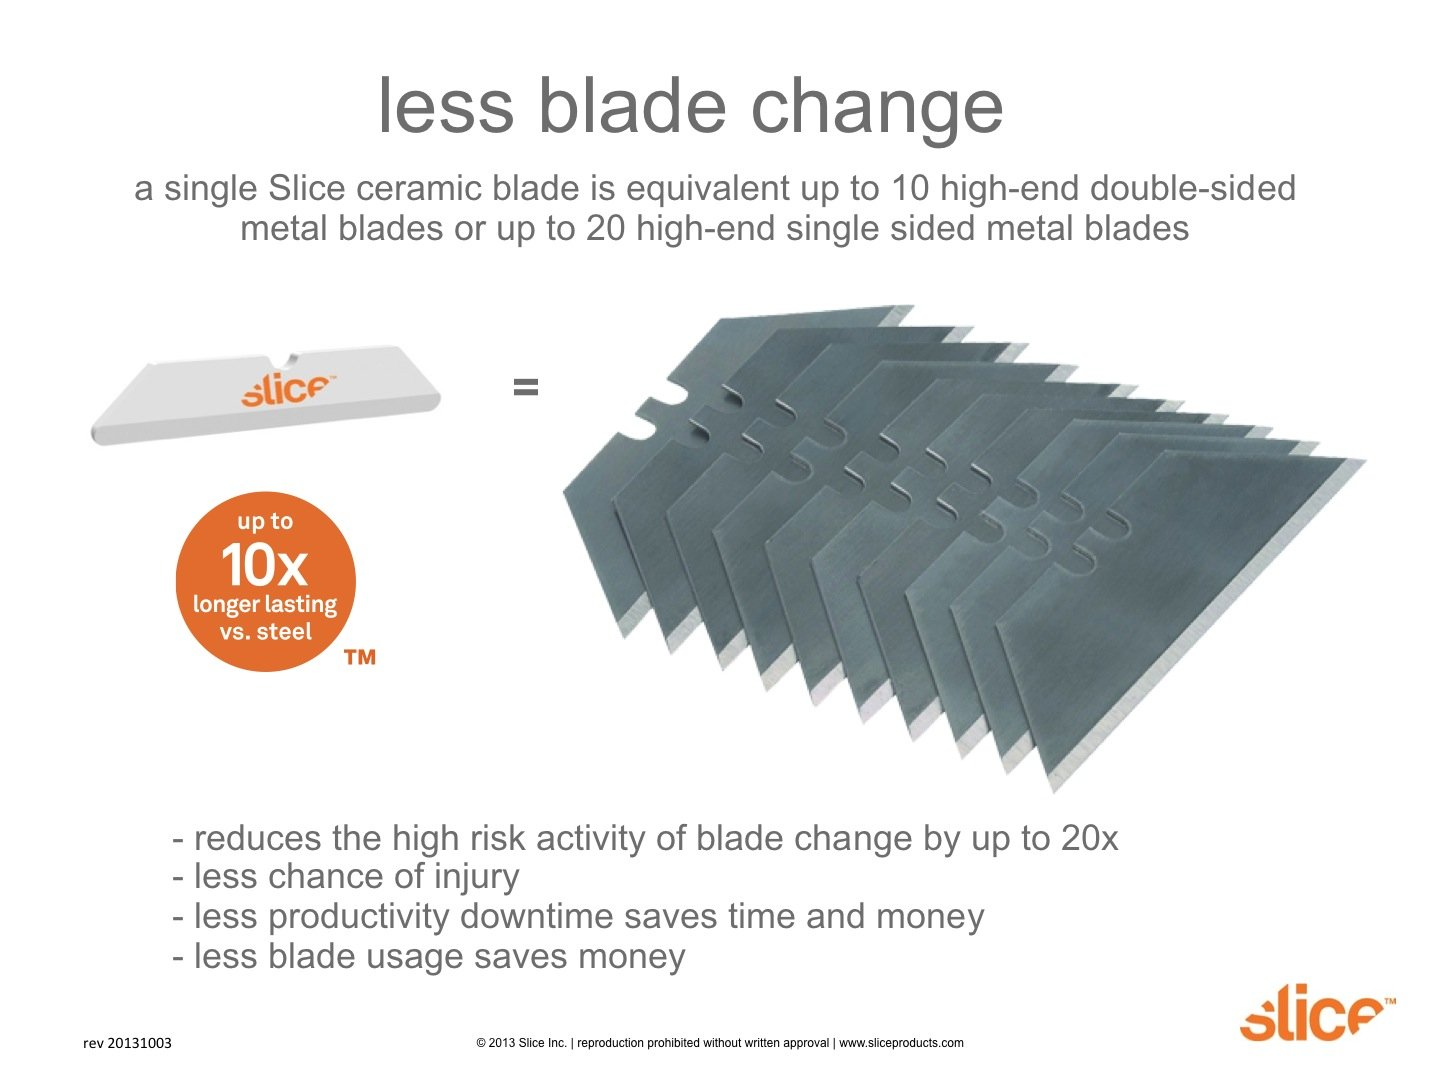 Slice 10503 Ceramic Box Cutter, Retractable, Finger Friendly Blade, Safety Knife, Stays Sharp up to 11x Longer Than Steel Blades, 6 Pack by Slice (Image #3)